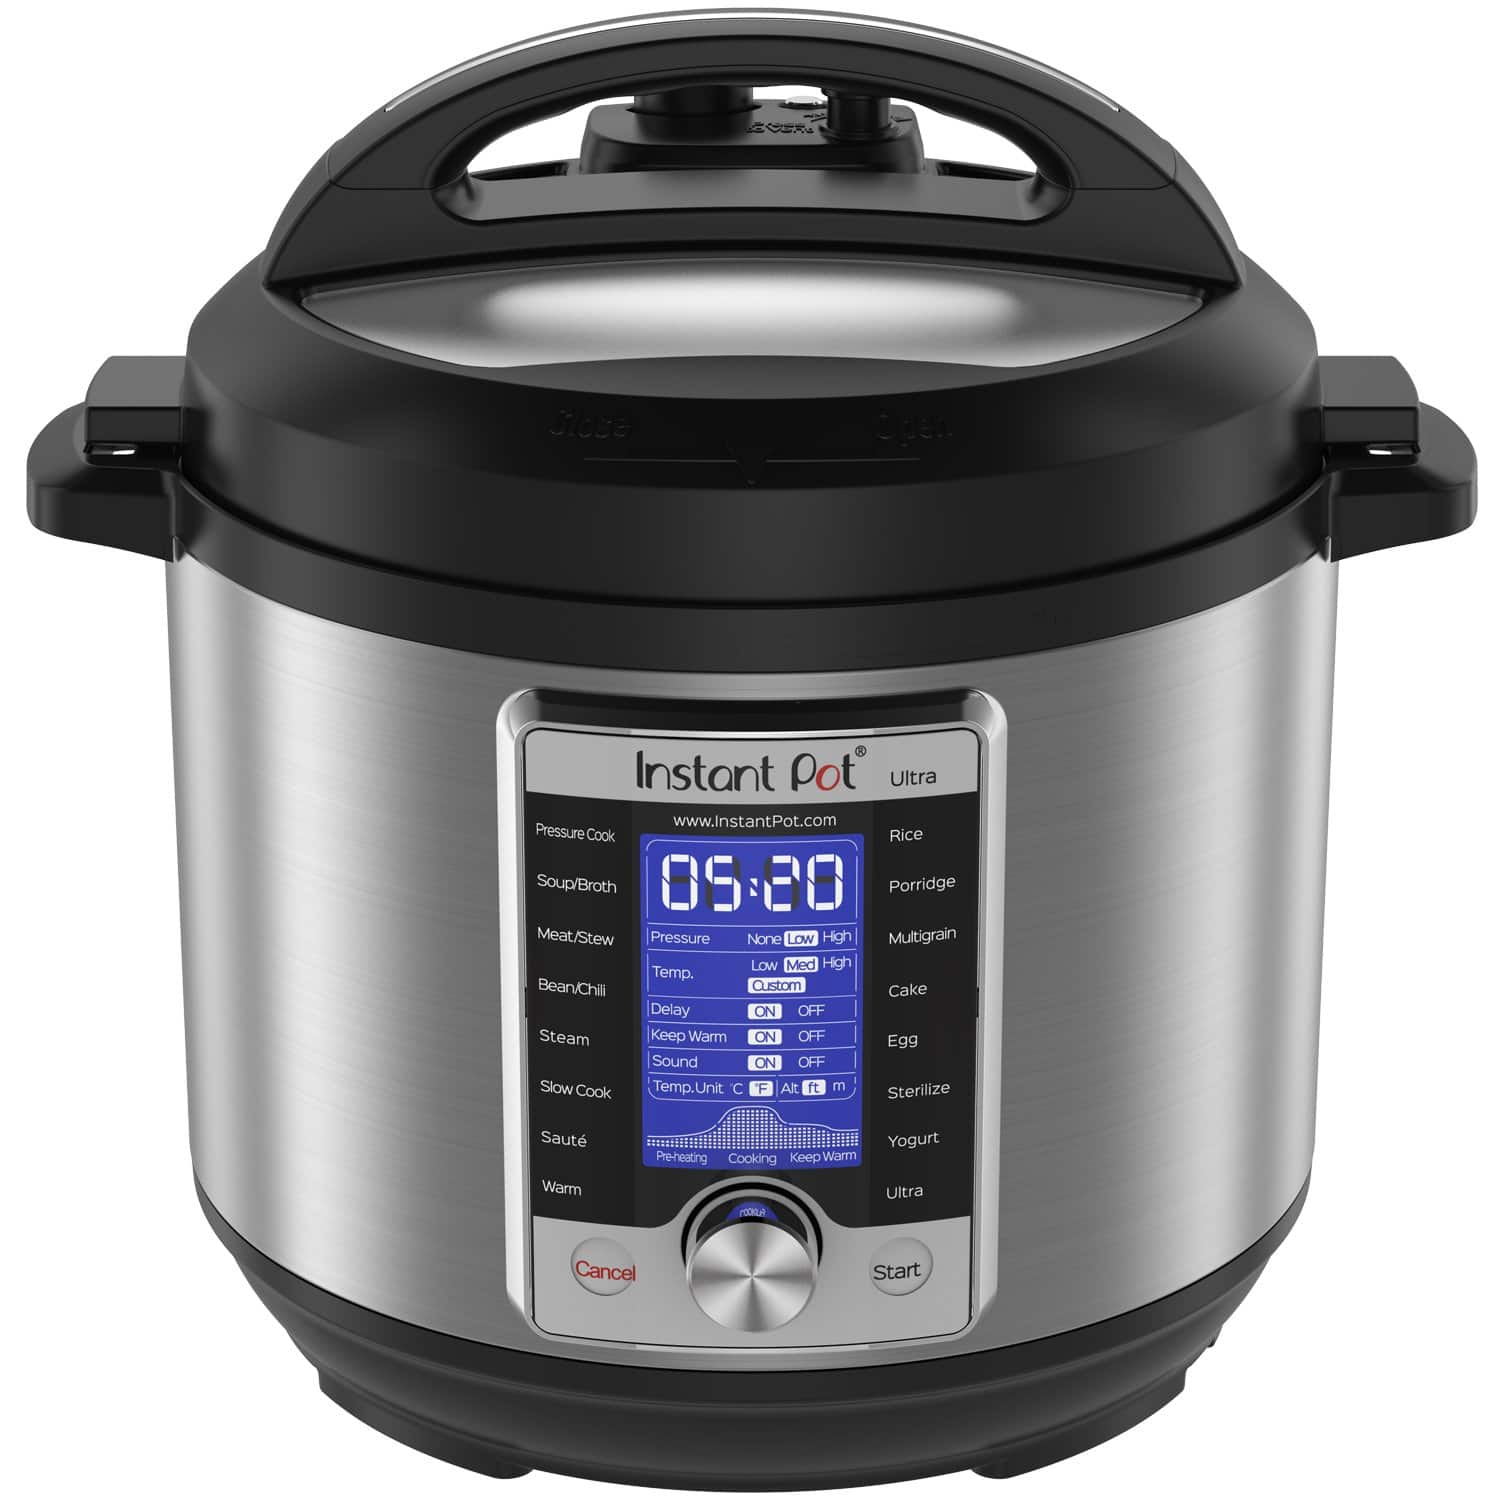 Instant Pot Ultra 6 Qt 10-in-1 pressure cooker - $87.99 + FS at Amazon and/or at Kohl (with 15% free coupon) + $10 Kohl card (use later)